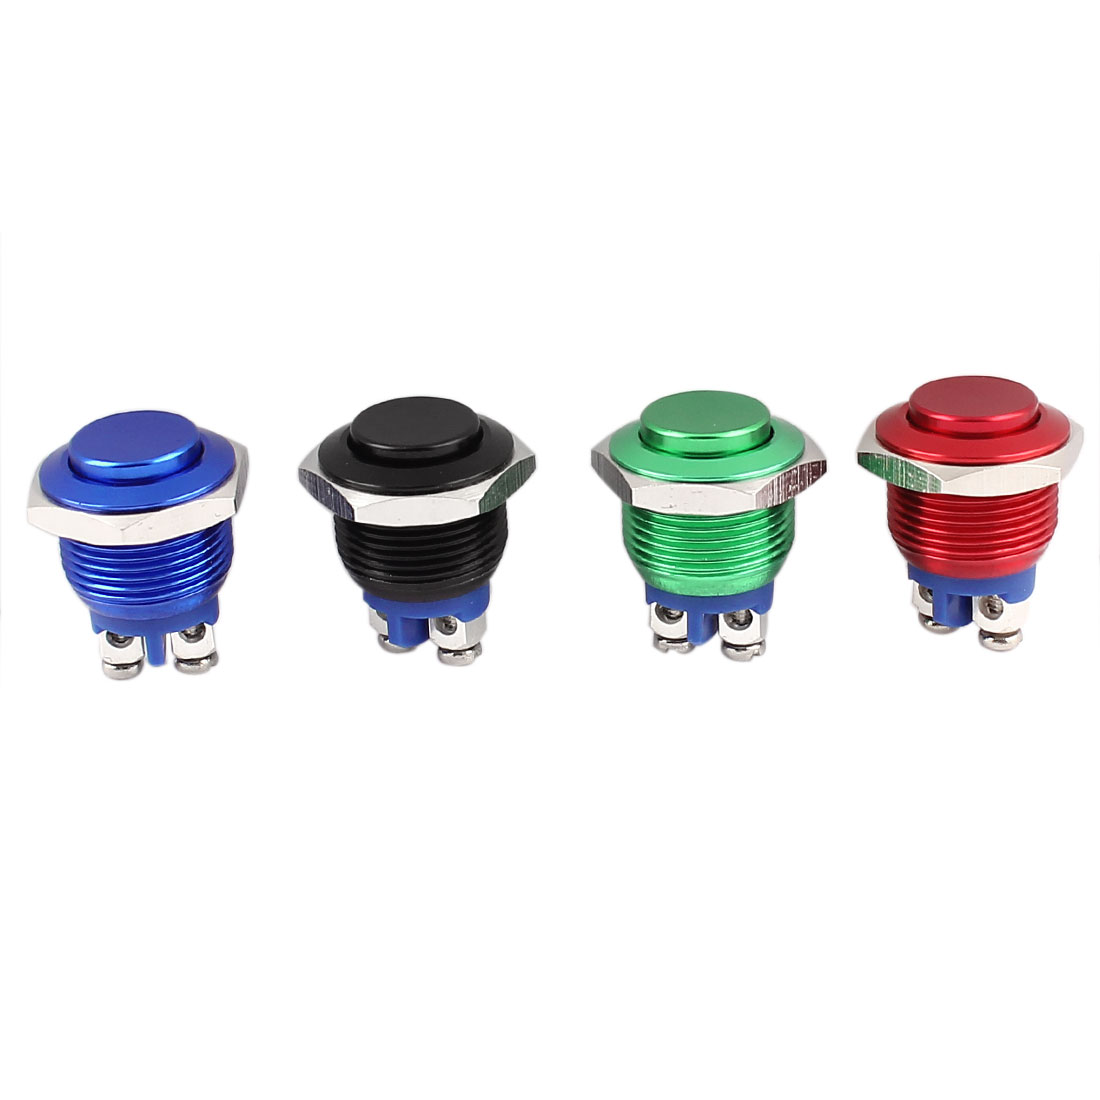 4Pcs 16mm Mounted Thread SPST Momentary Galvanized High Head Push Button Switch Set